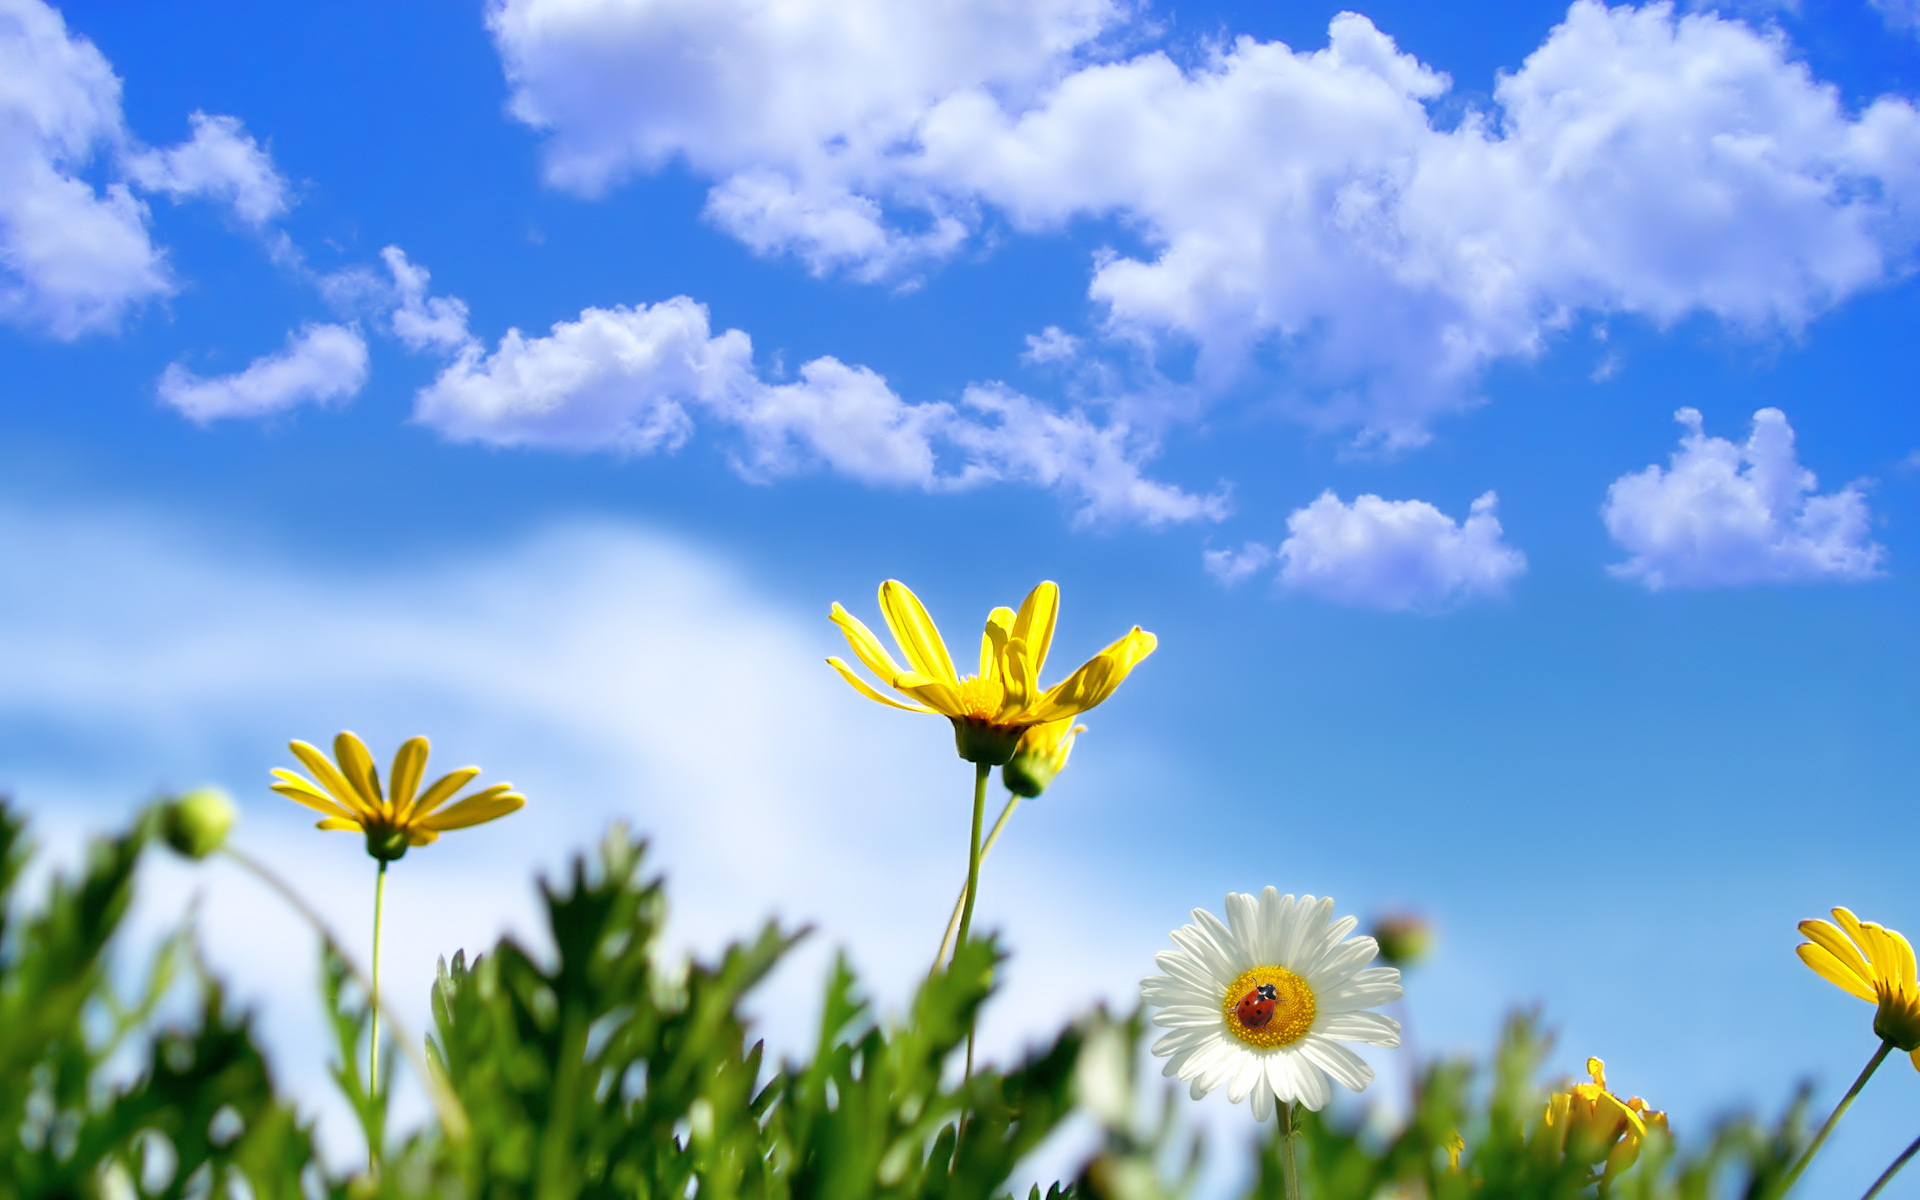 Scenery Wallpaper Shows Sunny Springtime Keep Spring All 1920x1200